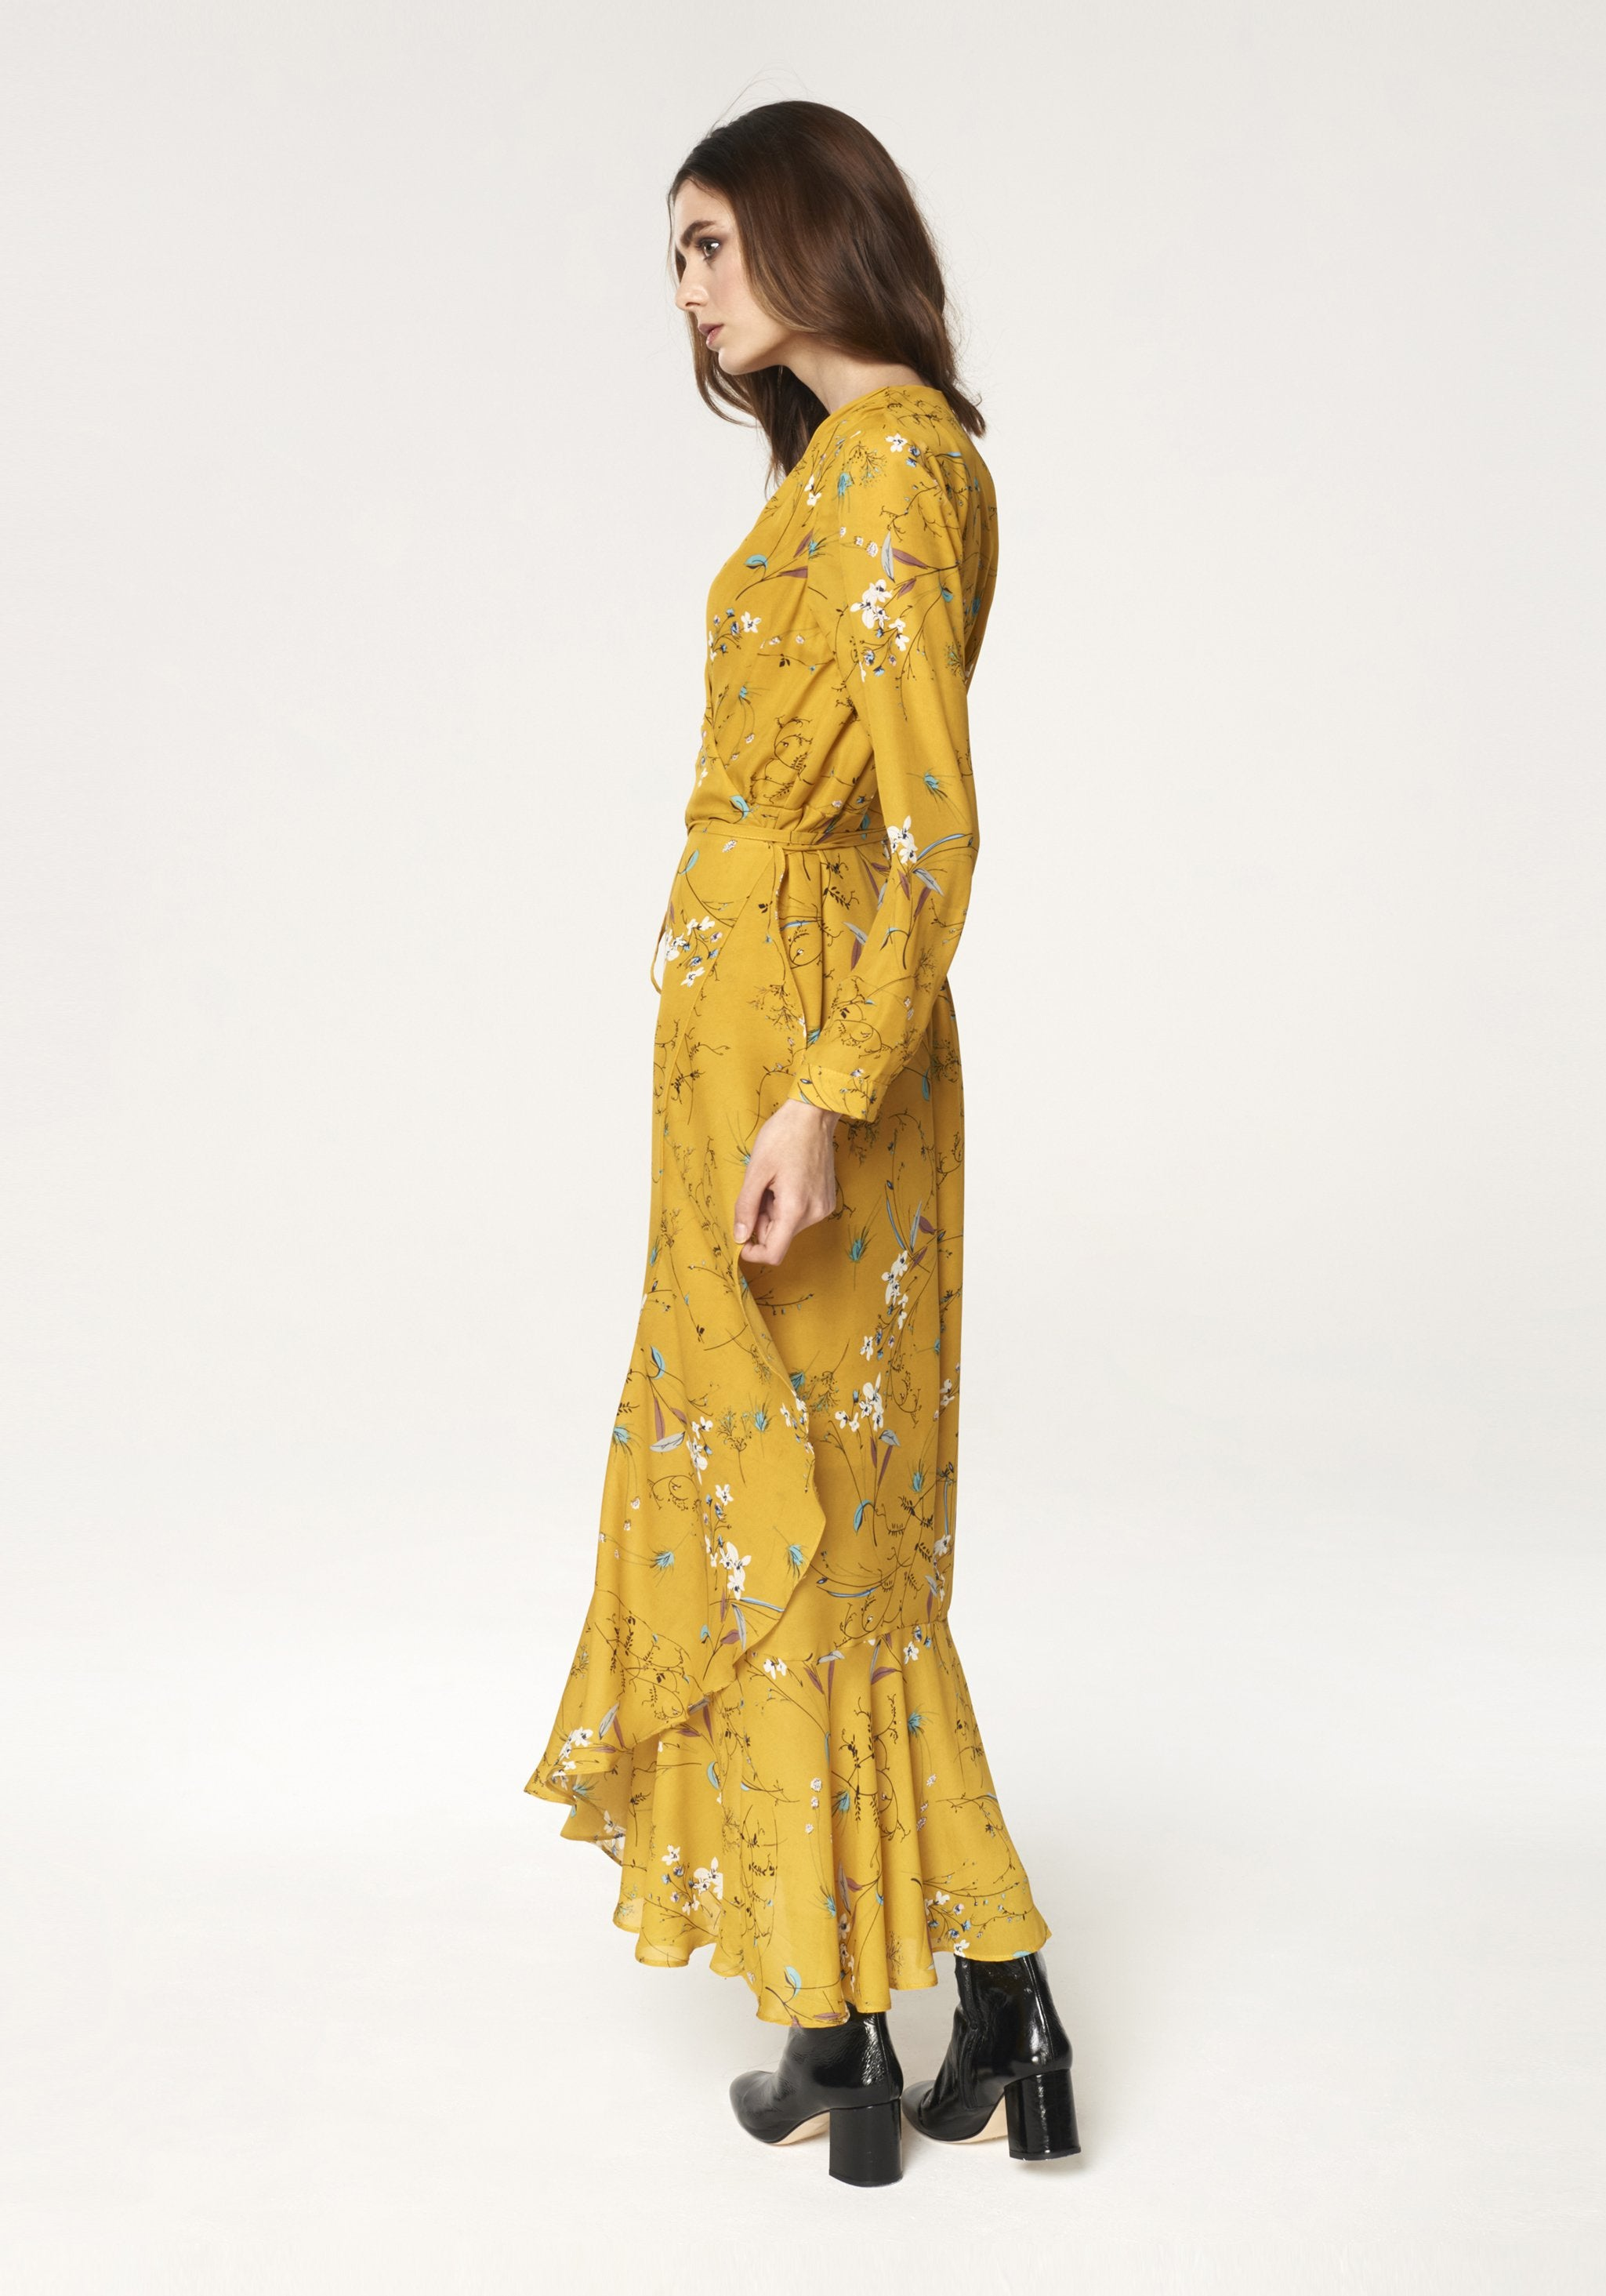 Floral Tie Wrap Maxi Dress with Frills in Yellow